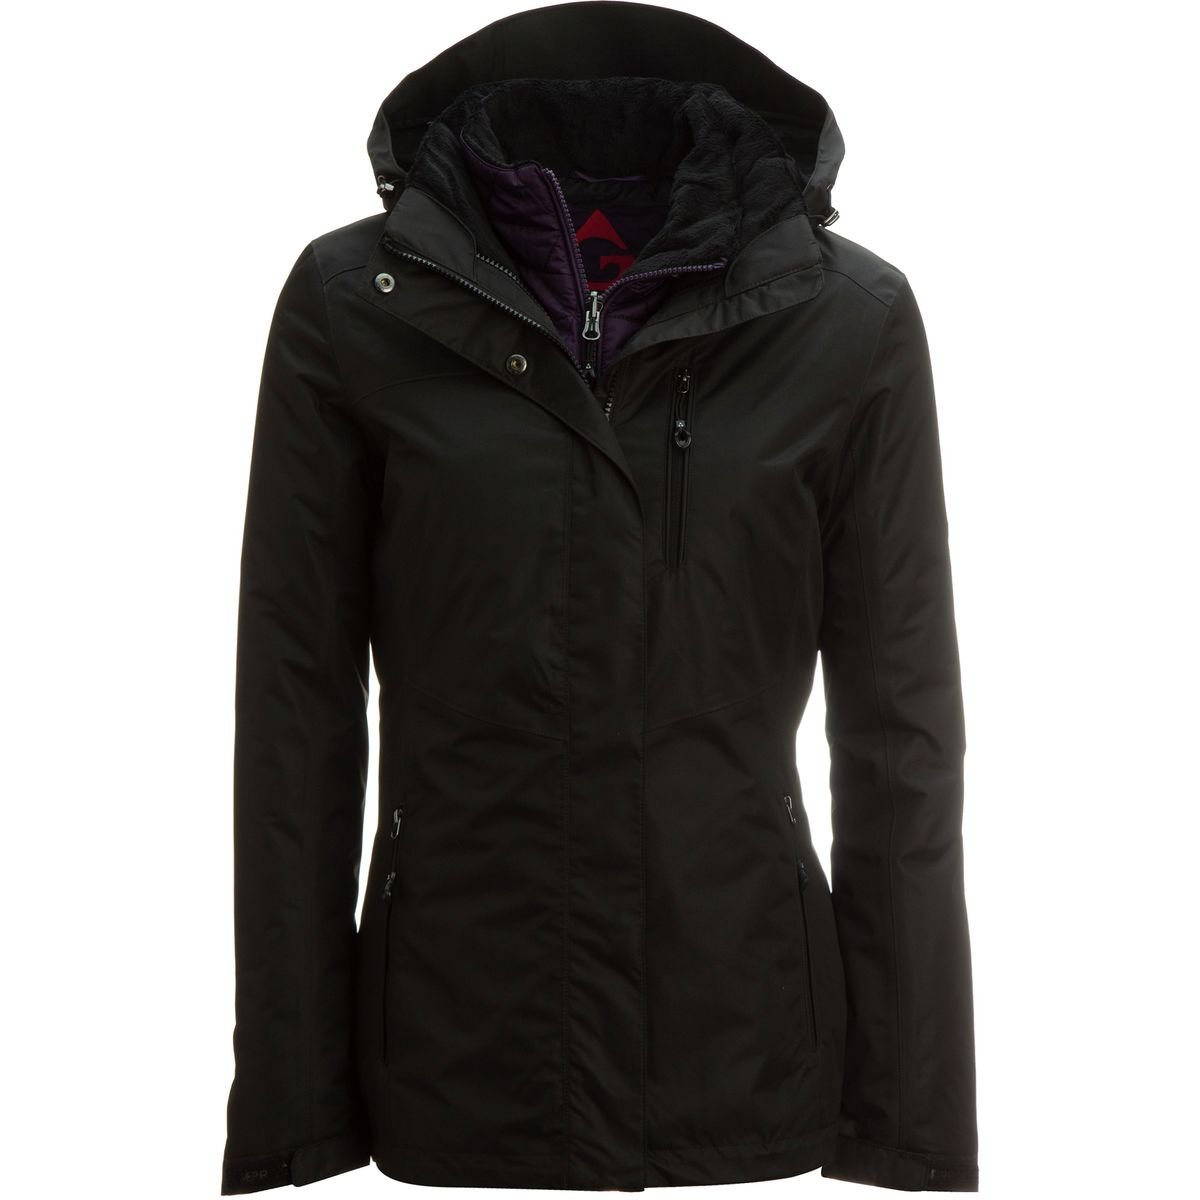 Gerry 3-in-1 Systems Jacket - Women's Black, S